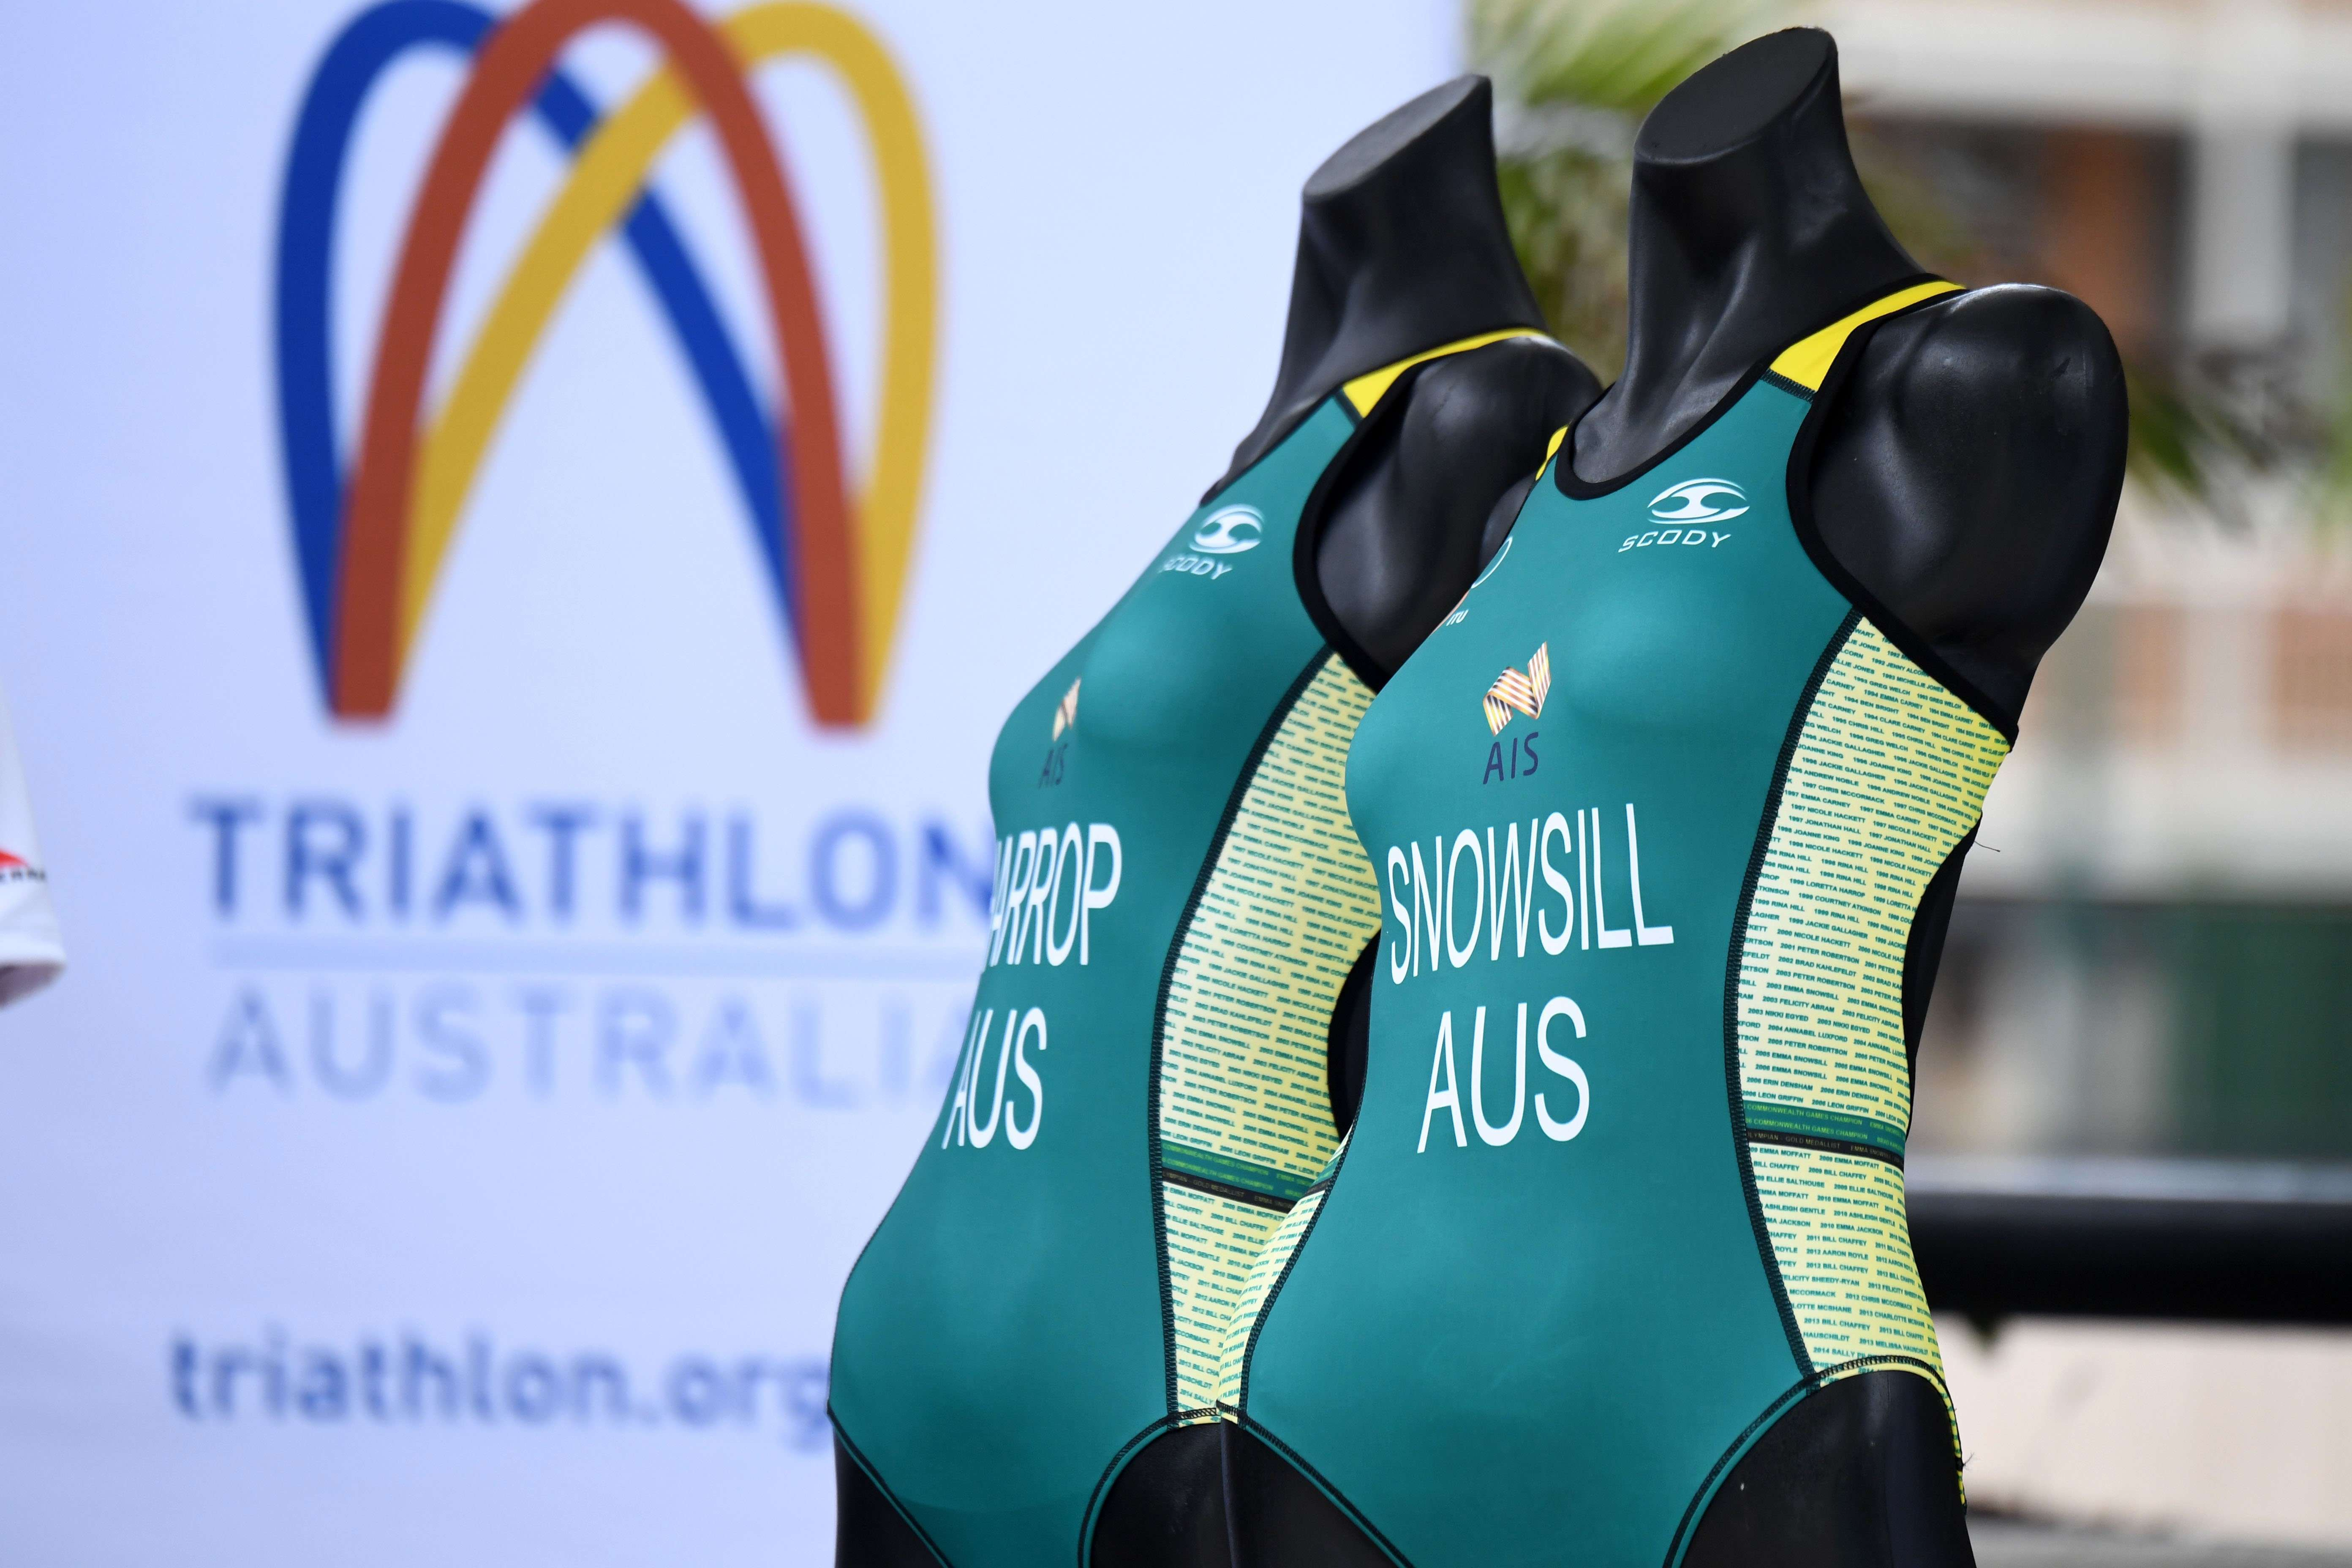 Triathlon Australia Fitting Suits 2017